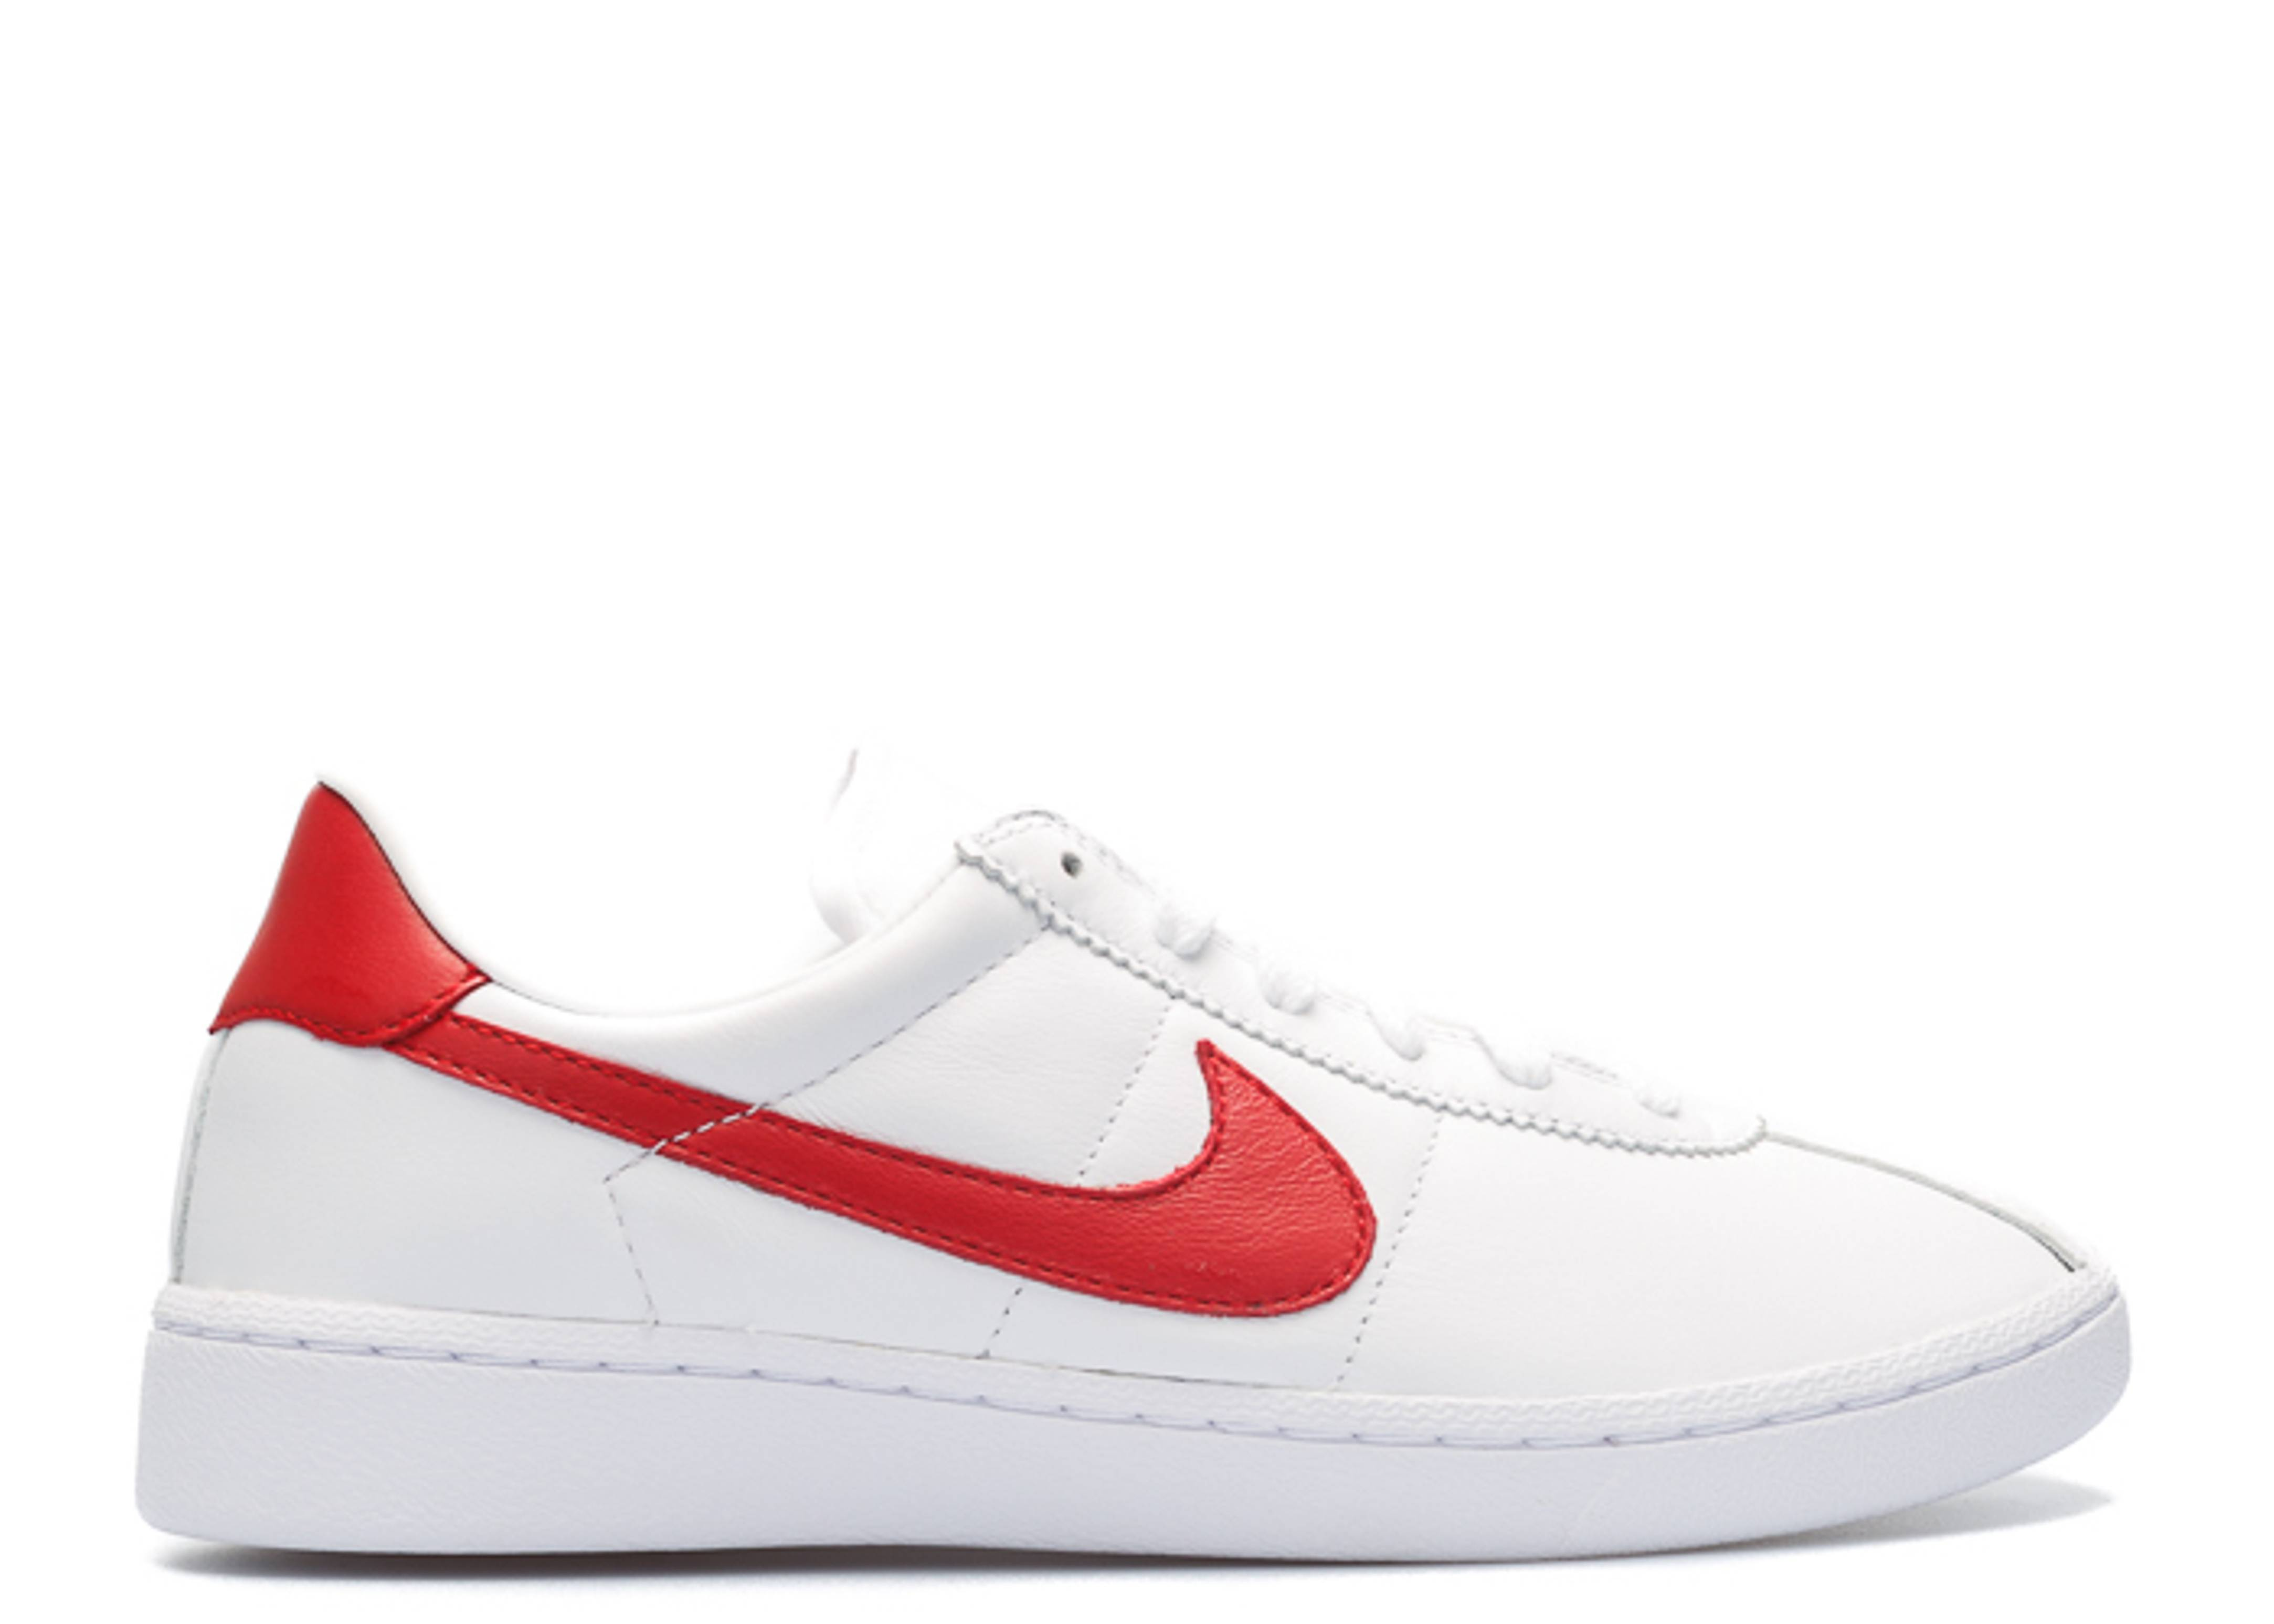 new arrival 2cb10 d5d86 ... italy bruin leather marty mcfly nike 826670 160 white university red  flight club 0a897 1ca65